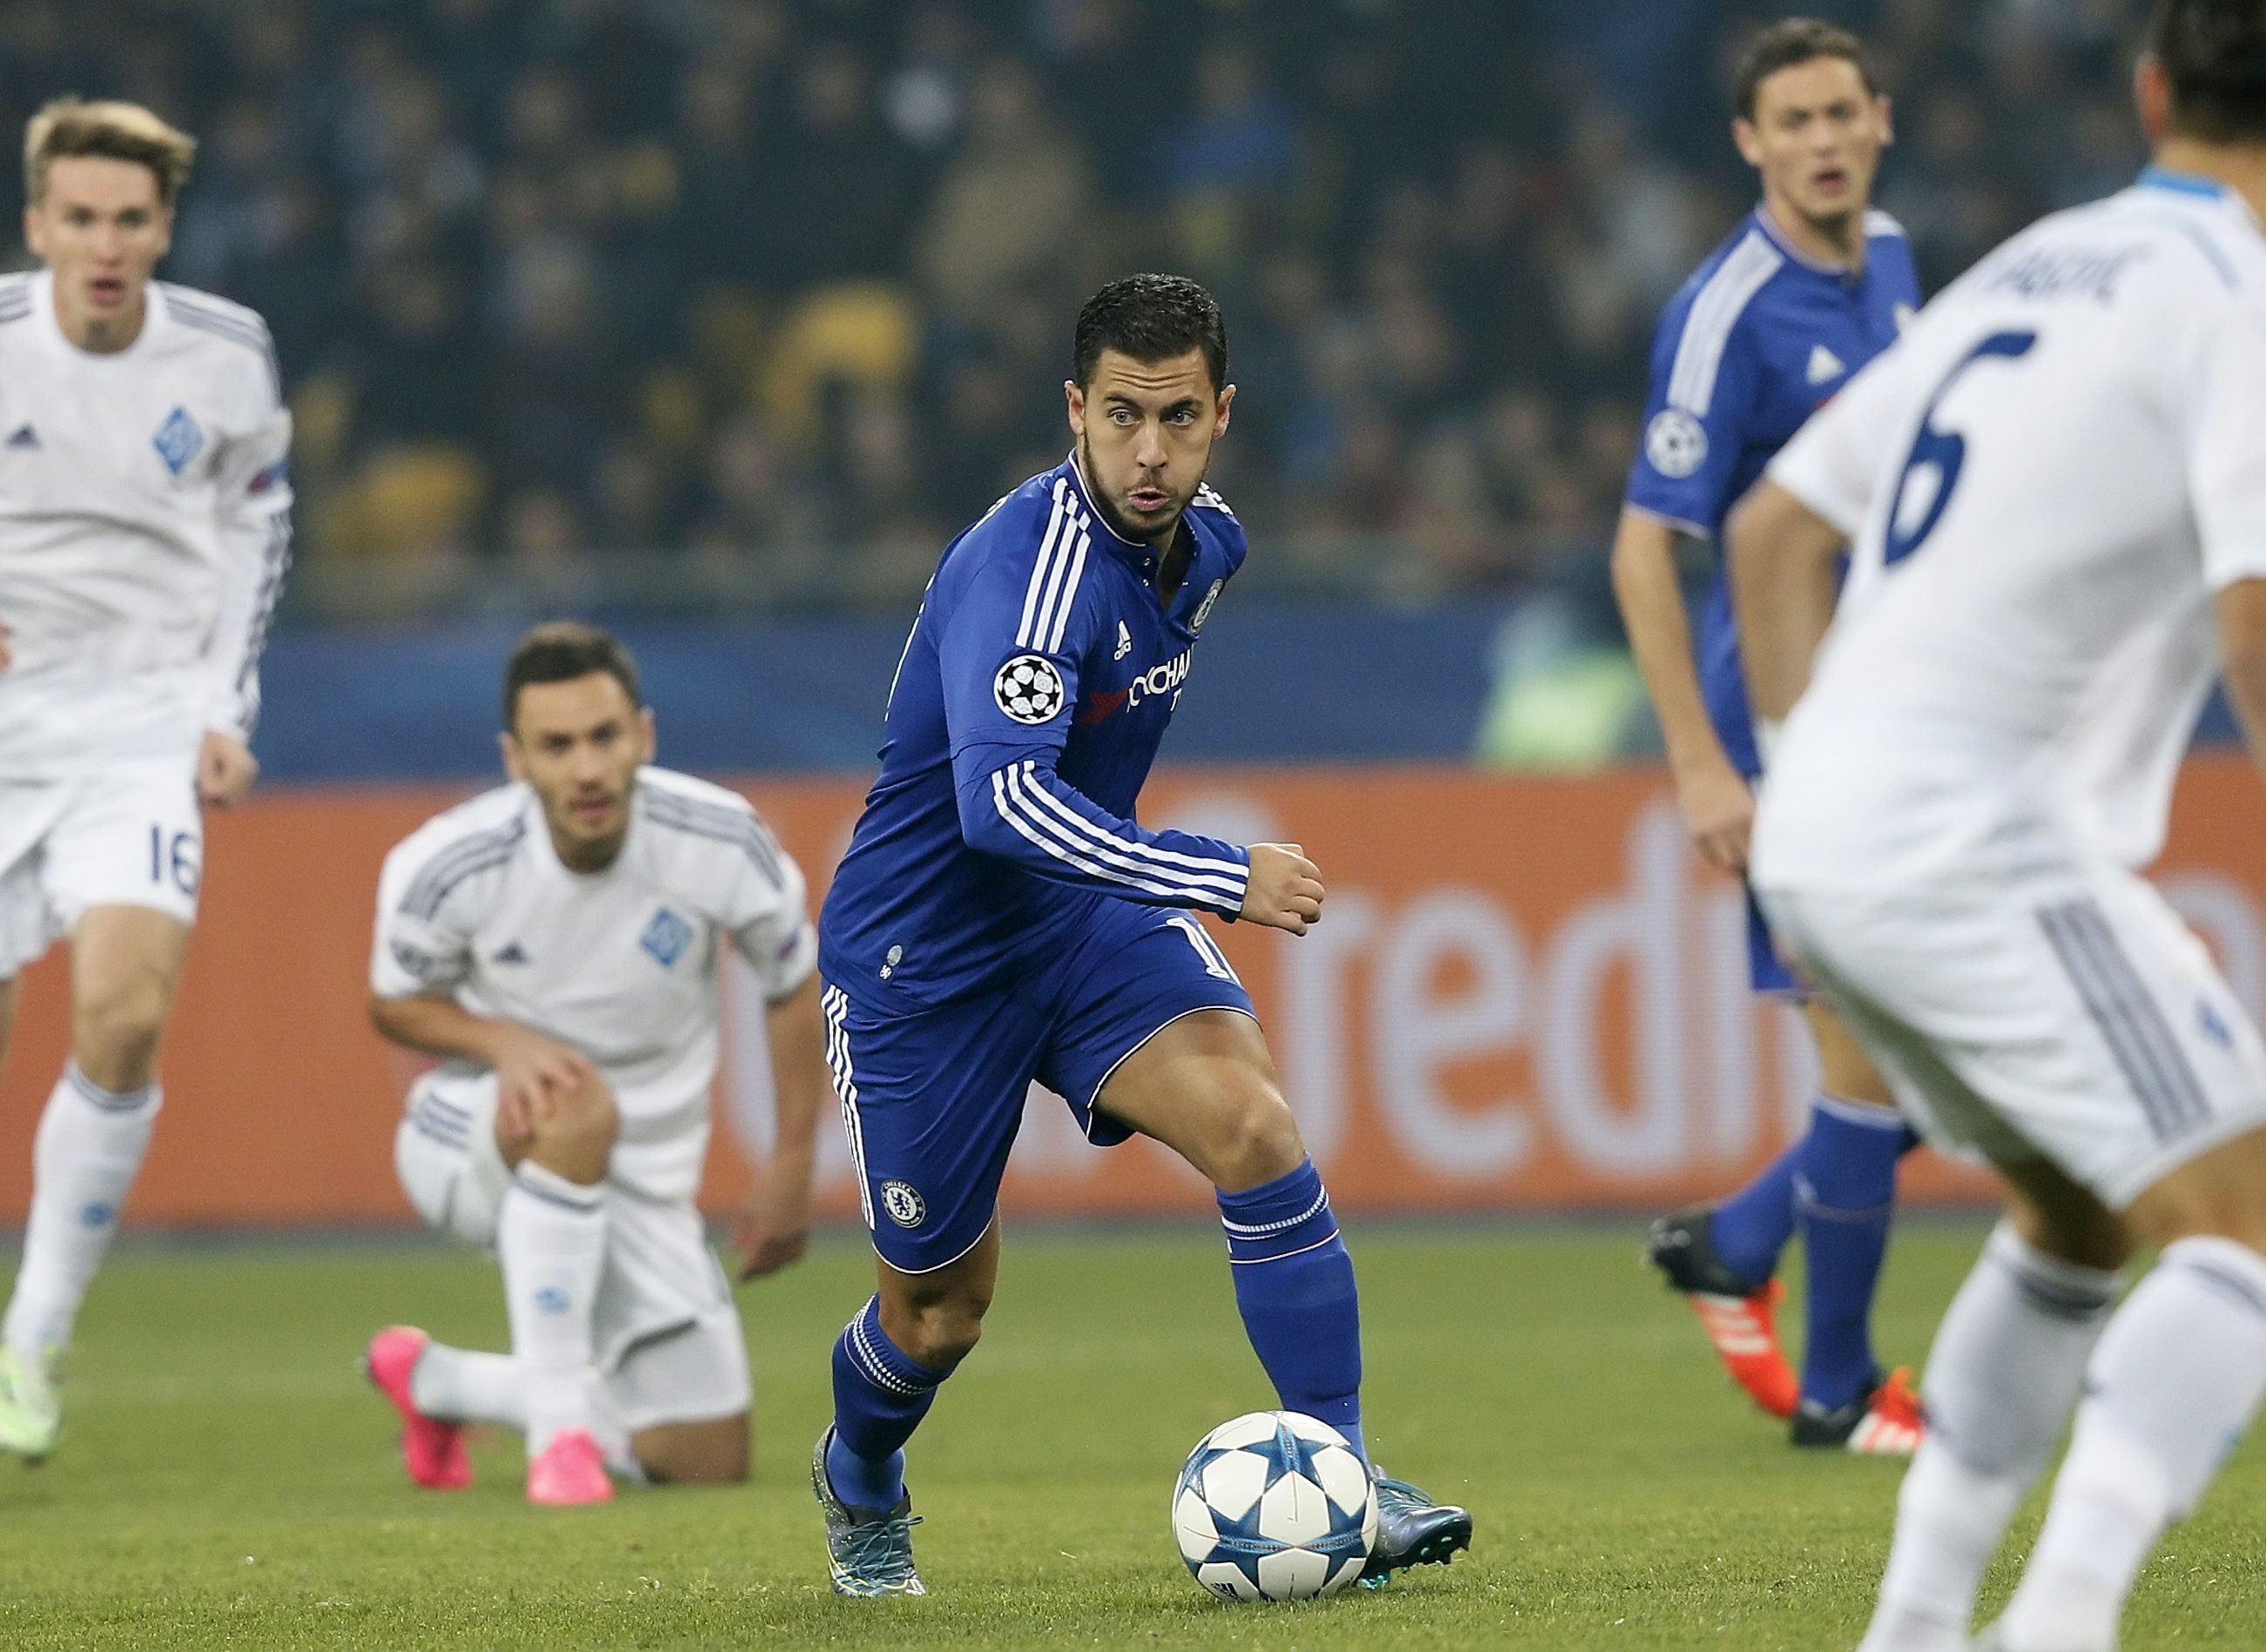 epa04985879 Eden Hazard (C) of Chelsea vies for the ball with Aleksandar Dragovic (R) of Dynamo during the UEFA Champions League group stage, Group G, soccer match between Dynamo Kyiv and Chelsea at the Olimpiyskiy stadium in Kiev, Ukraine, 20 October 2015. EPA/SERGEY DOLZHENKO